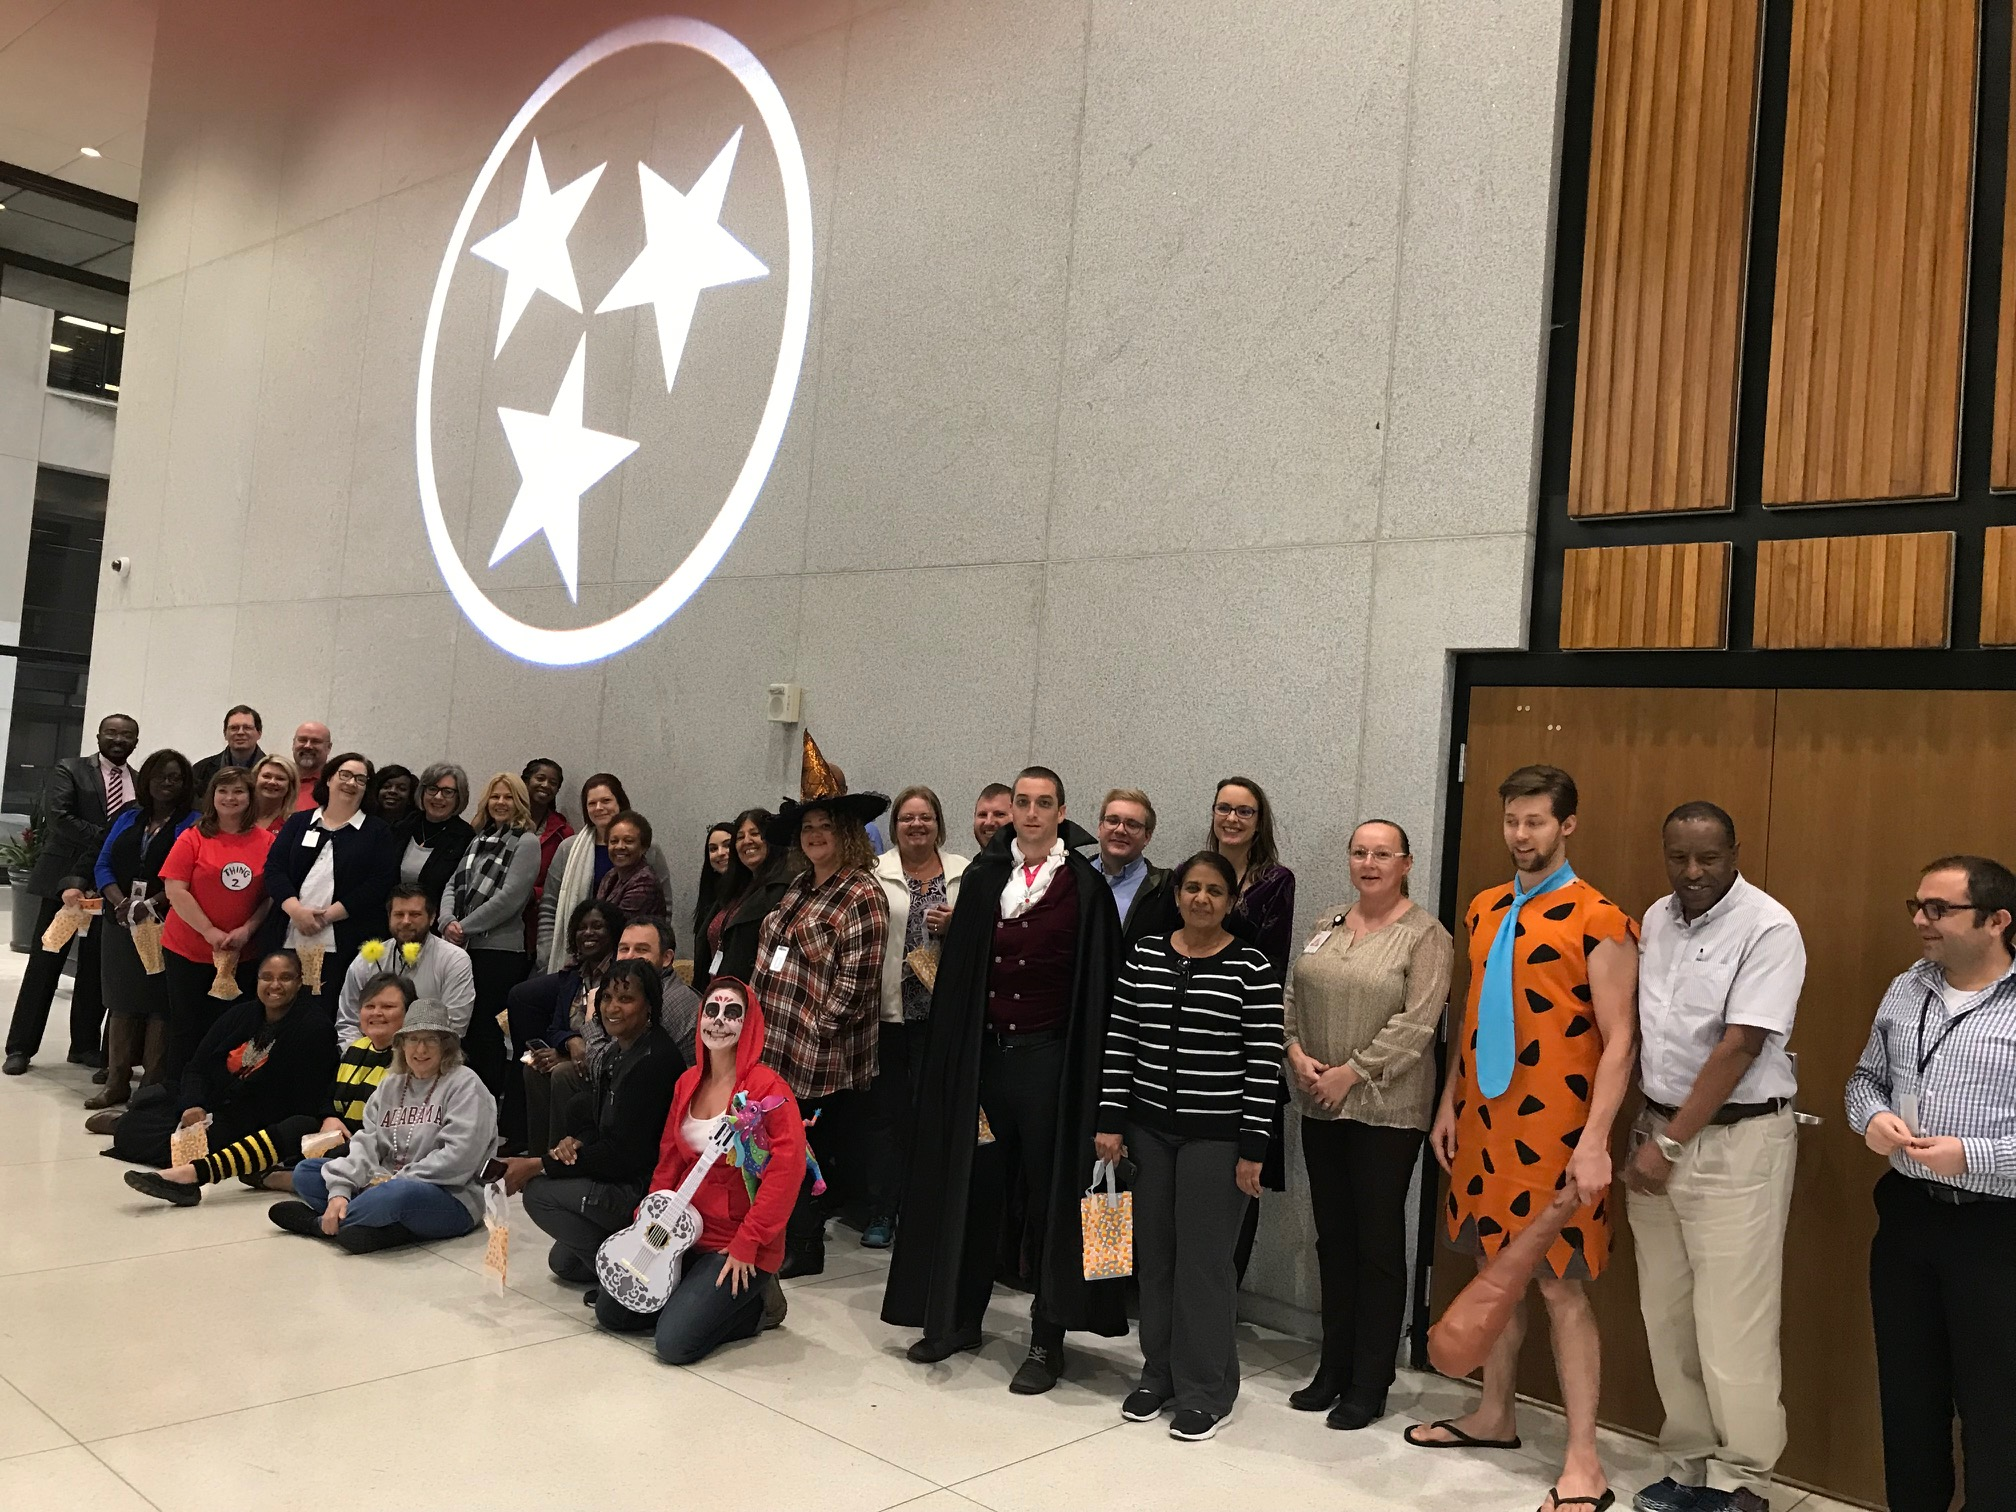 The Department of Human Services and The Department of Revenue teamed up to host a Healthy Halloween Wellness Walk. 42 people attended! They walked laps on the first floor of the Andrew Jackson Building, and enjoyed healthy Halloween treats.